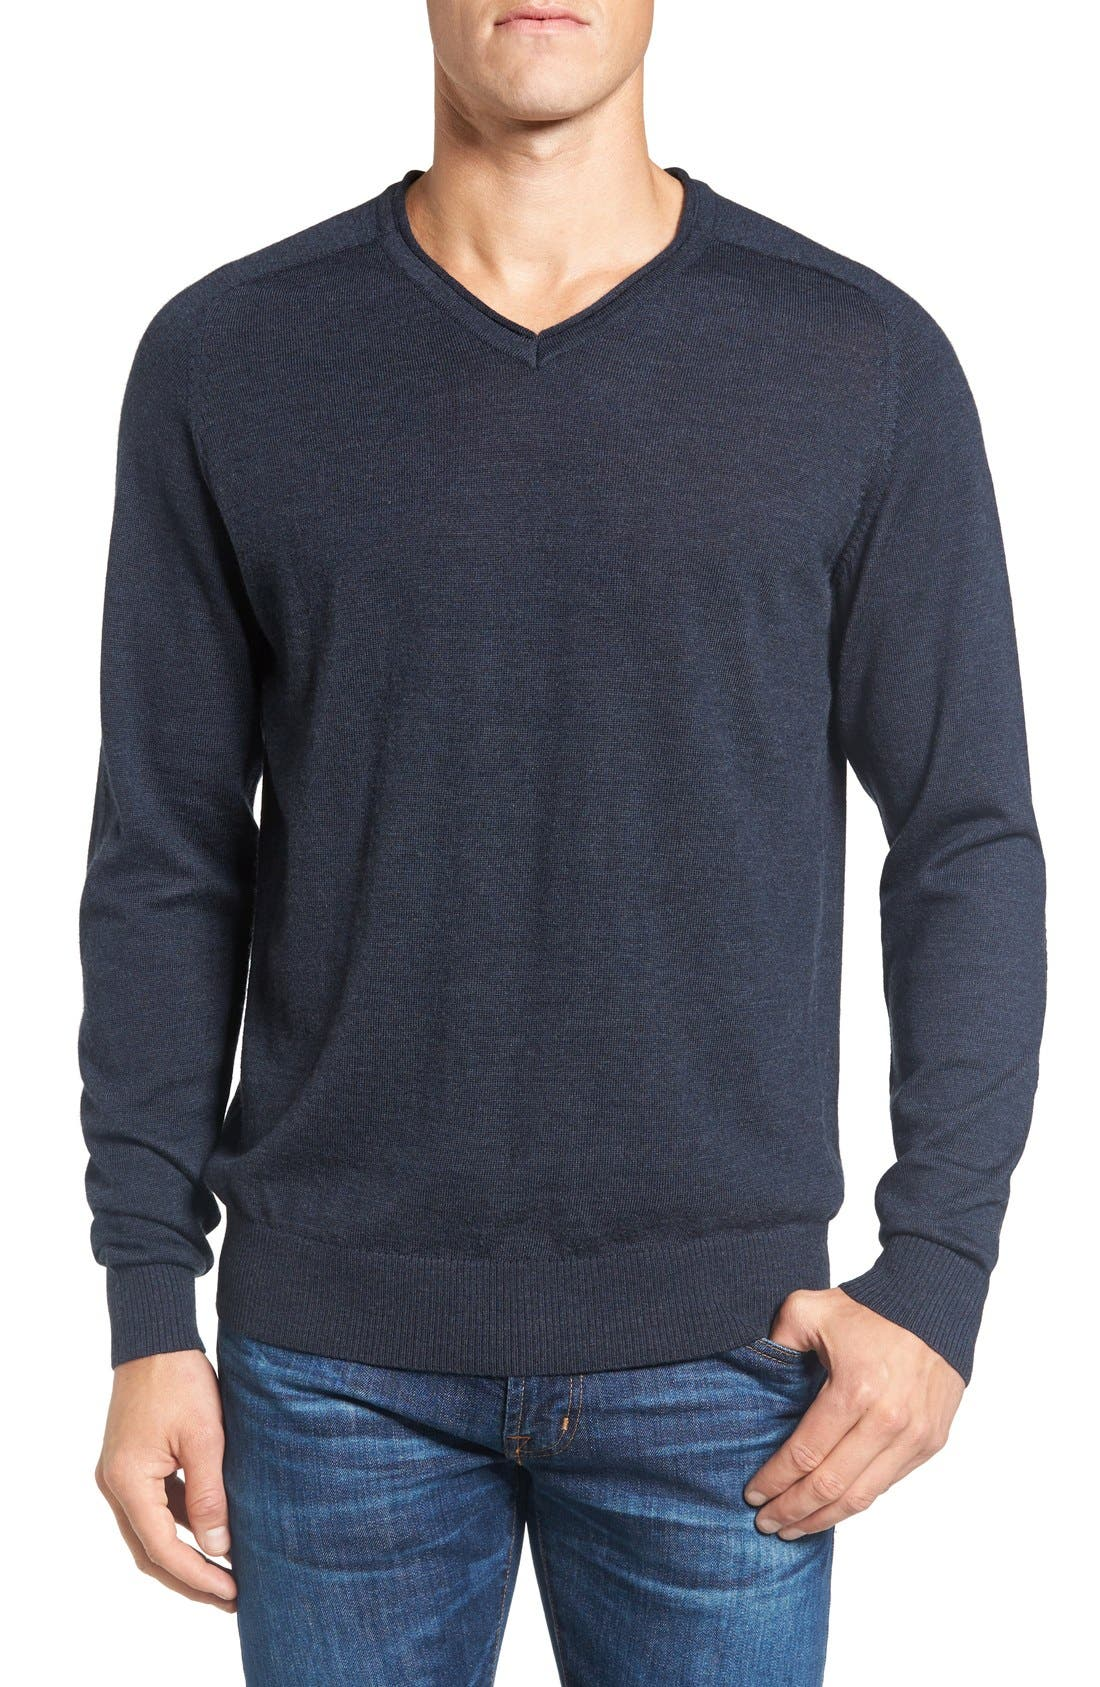 'Burwood Bay' Wool V-Neck Sweater,                             Main thumbnail 1, color,                             Ink